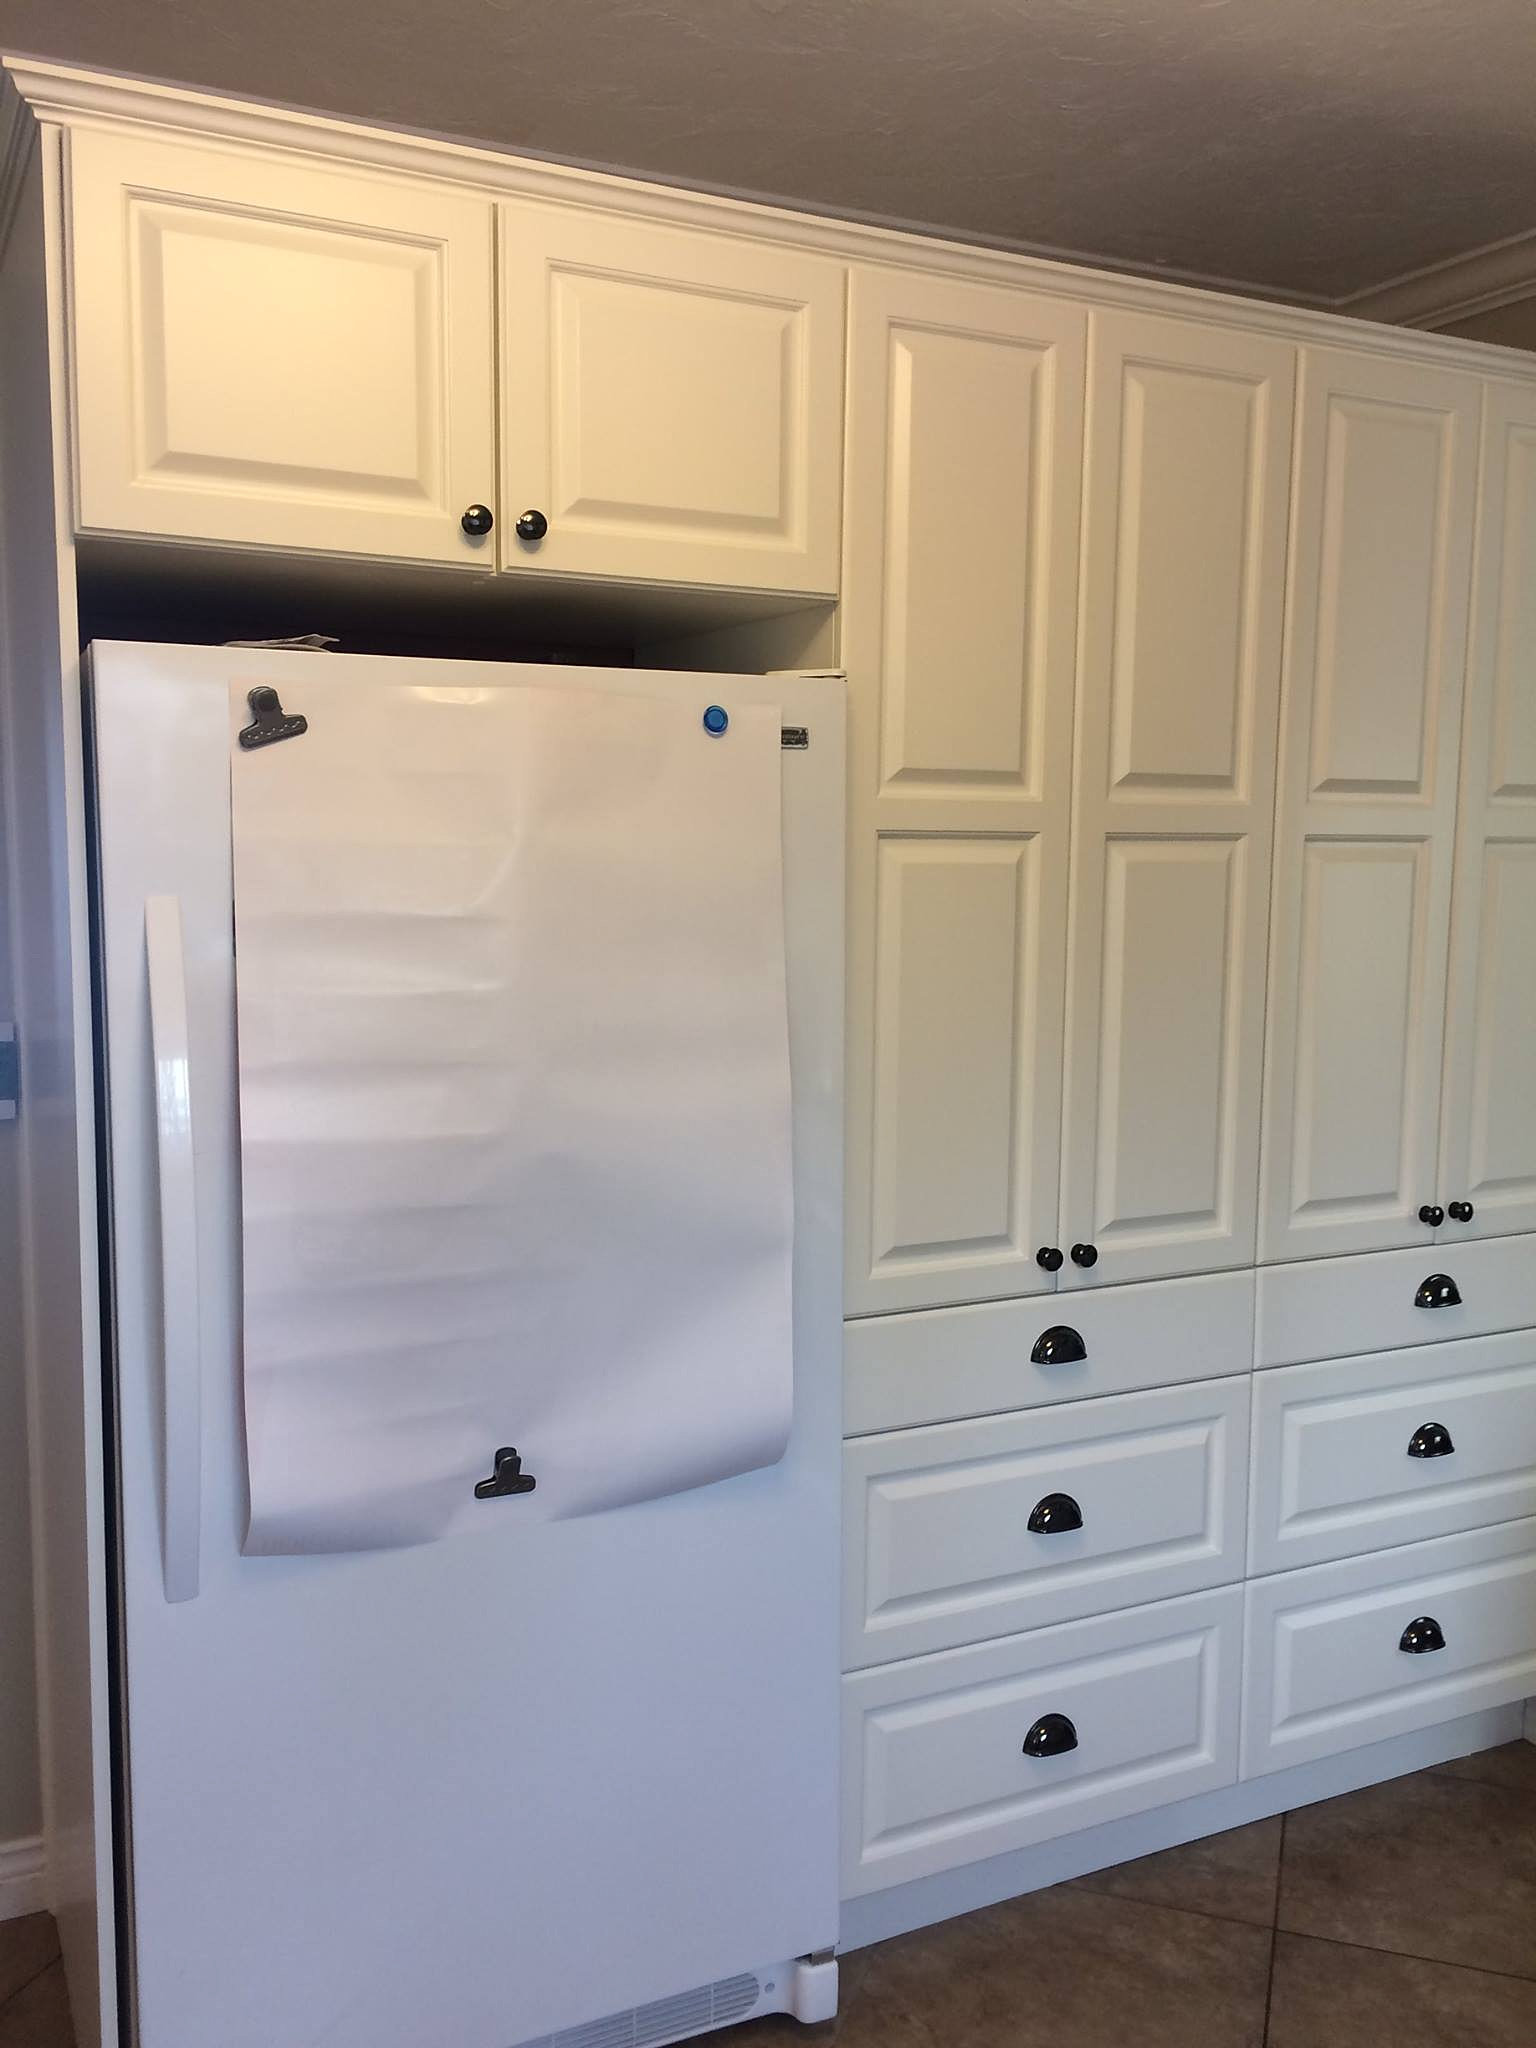 Kitchen Cabinet Refinishing Moncton The Spray Shop Moncton 39s Custom Cabinet Refinishing Experts